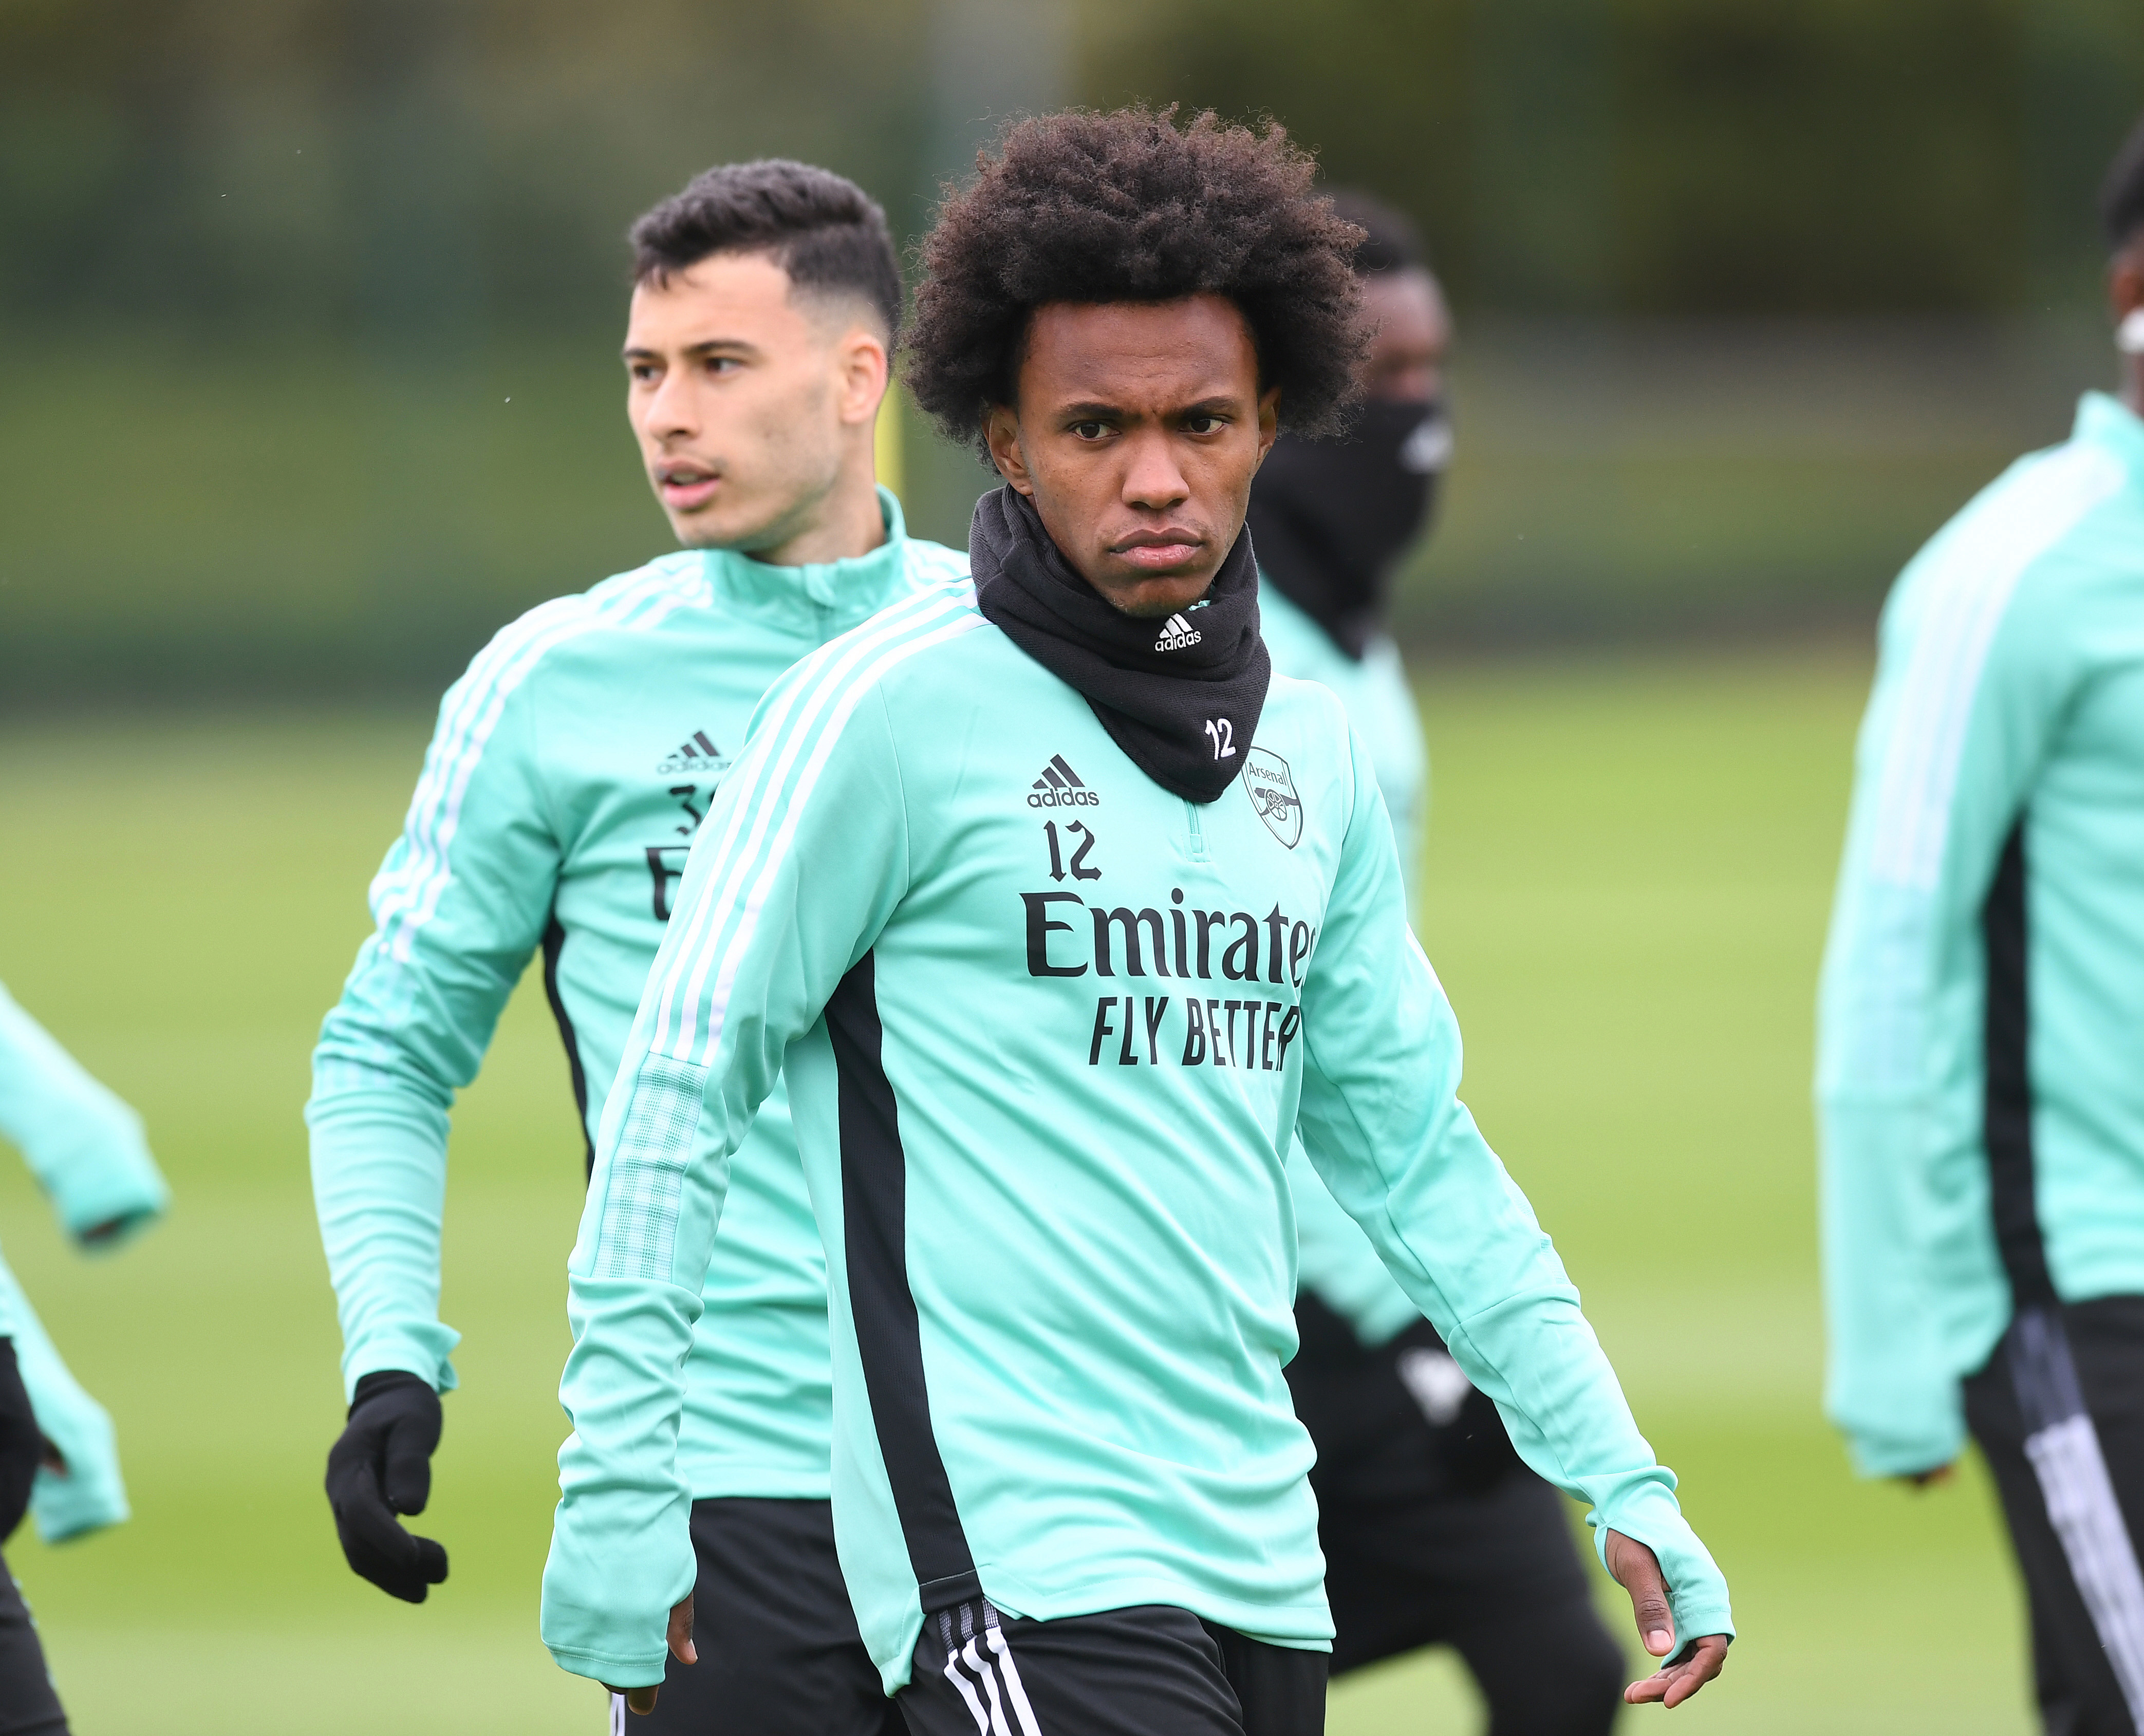 'I am sorry' – Willian apologises for disappointing spell at Arsenal after departure is confirmed